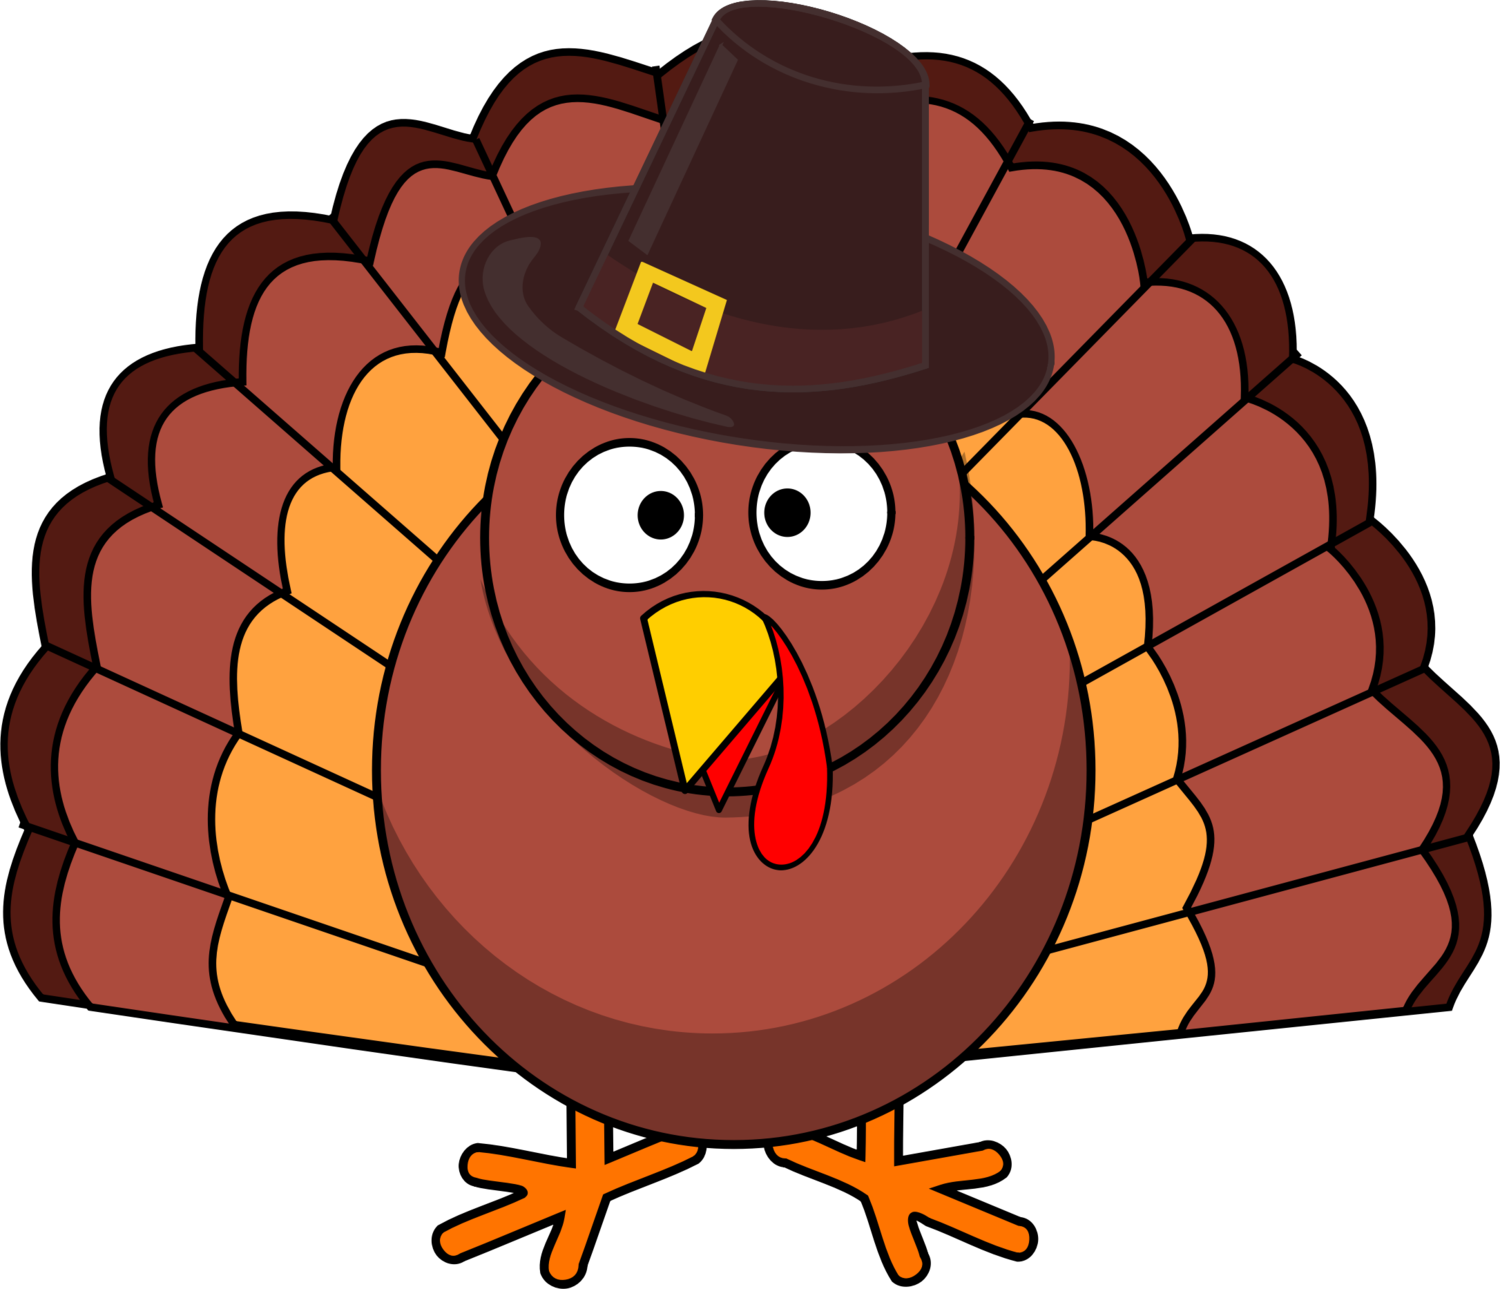 Someone choking at thanksgiving clipart vector freeuse library Why We're Thankful This Thanksgiving — Iron Lion Firm vector freeuse library